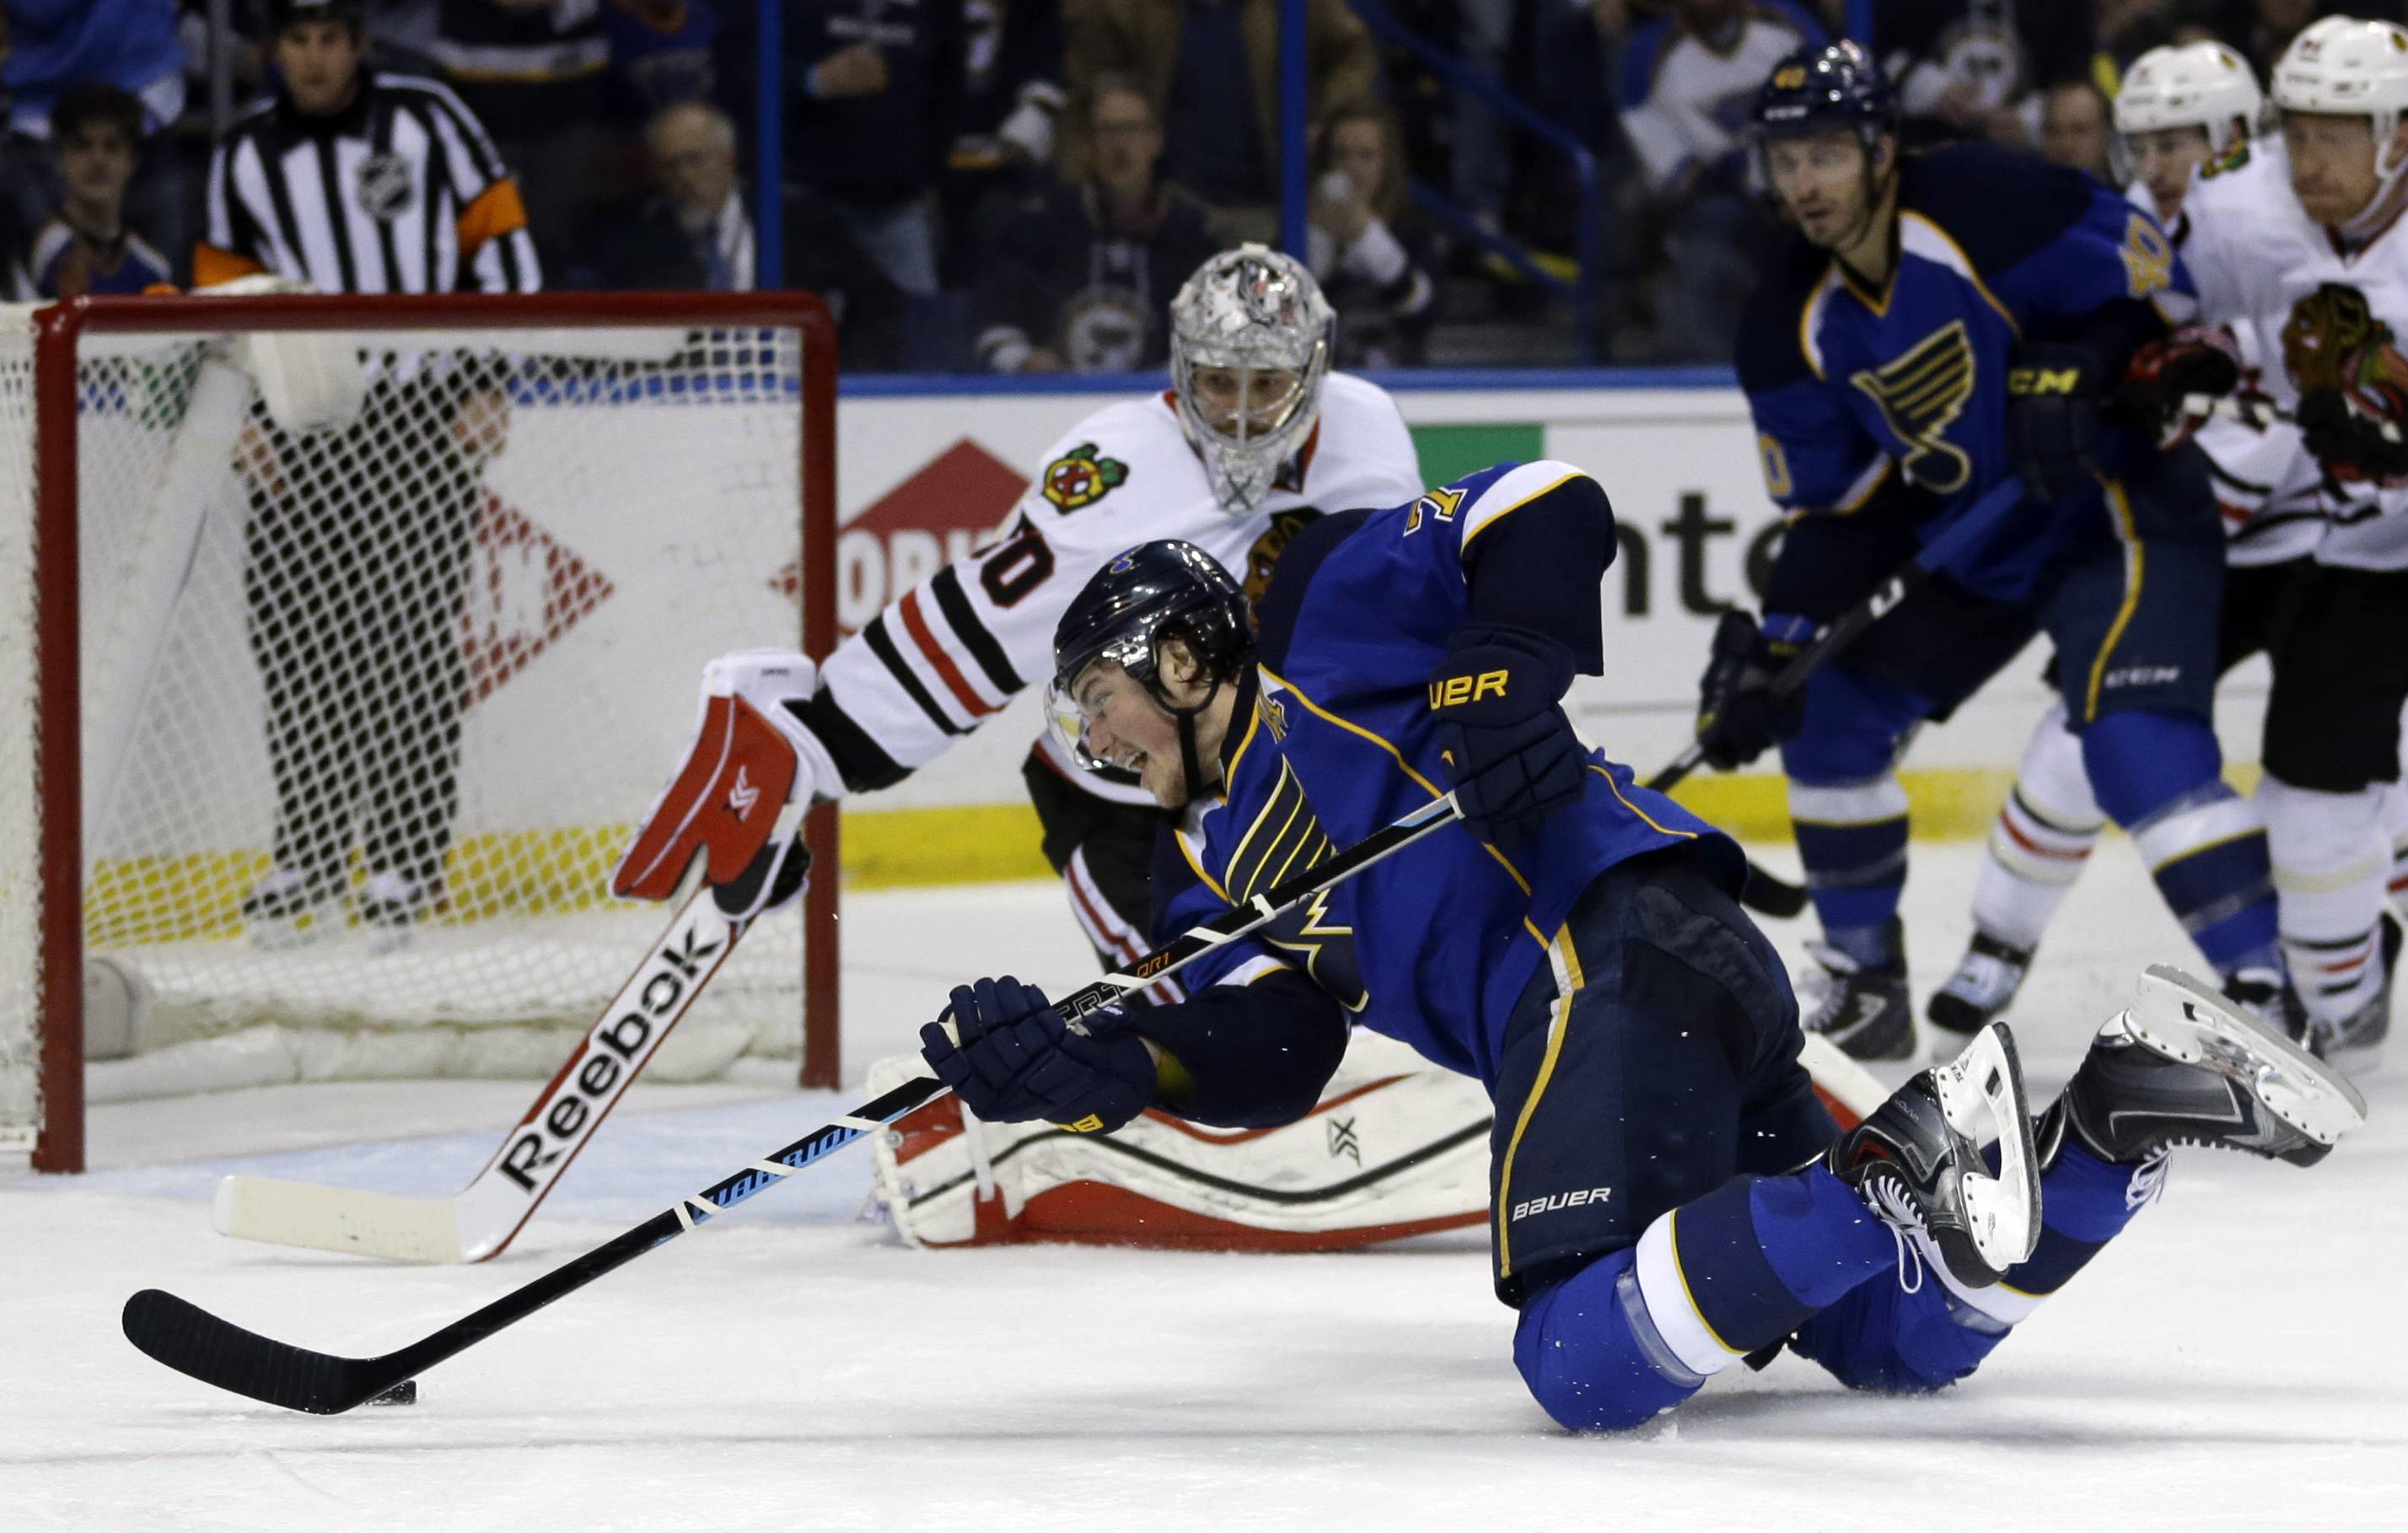 St. Louis' T.J. Oshie reaches for the puck and scores past Corey Crawford in the second period of Game 5 on Saturday.